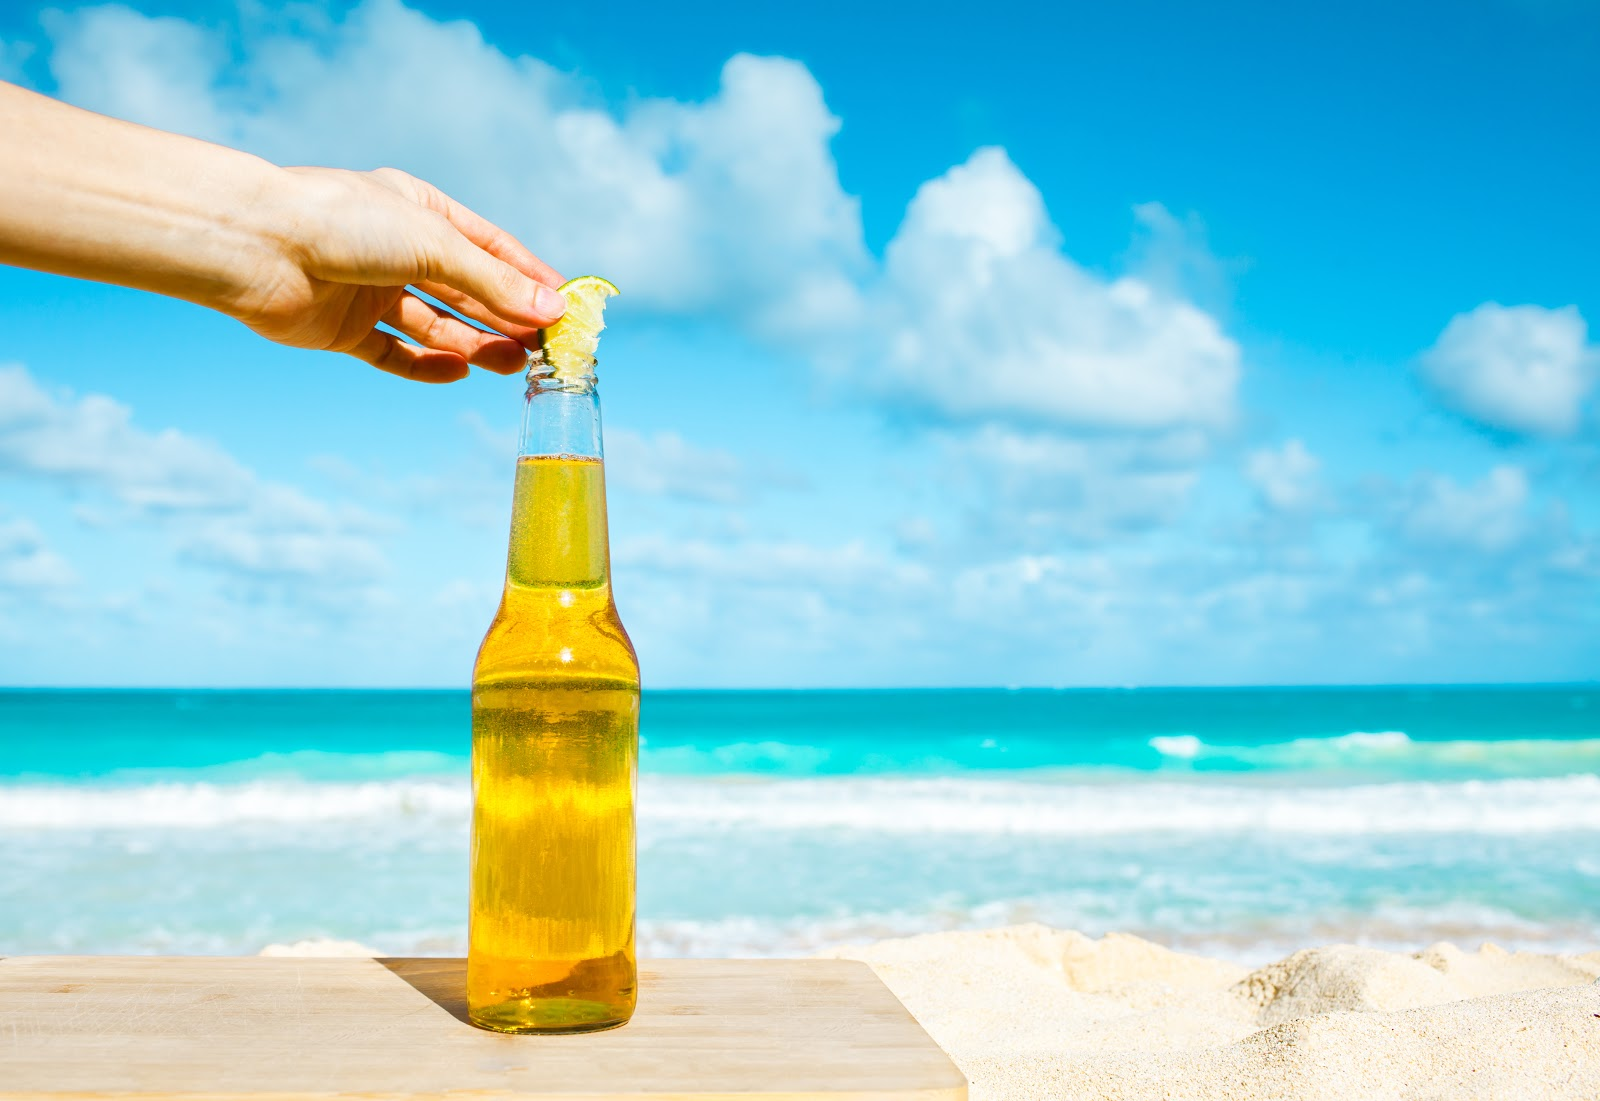 An image of a person placing a lemon into a beer bottle on a beach, emblematic of the Spanish lifestyle.